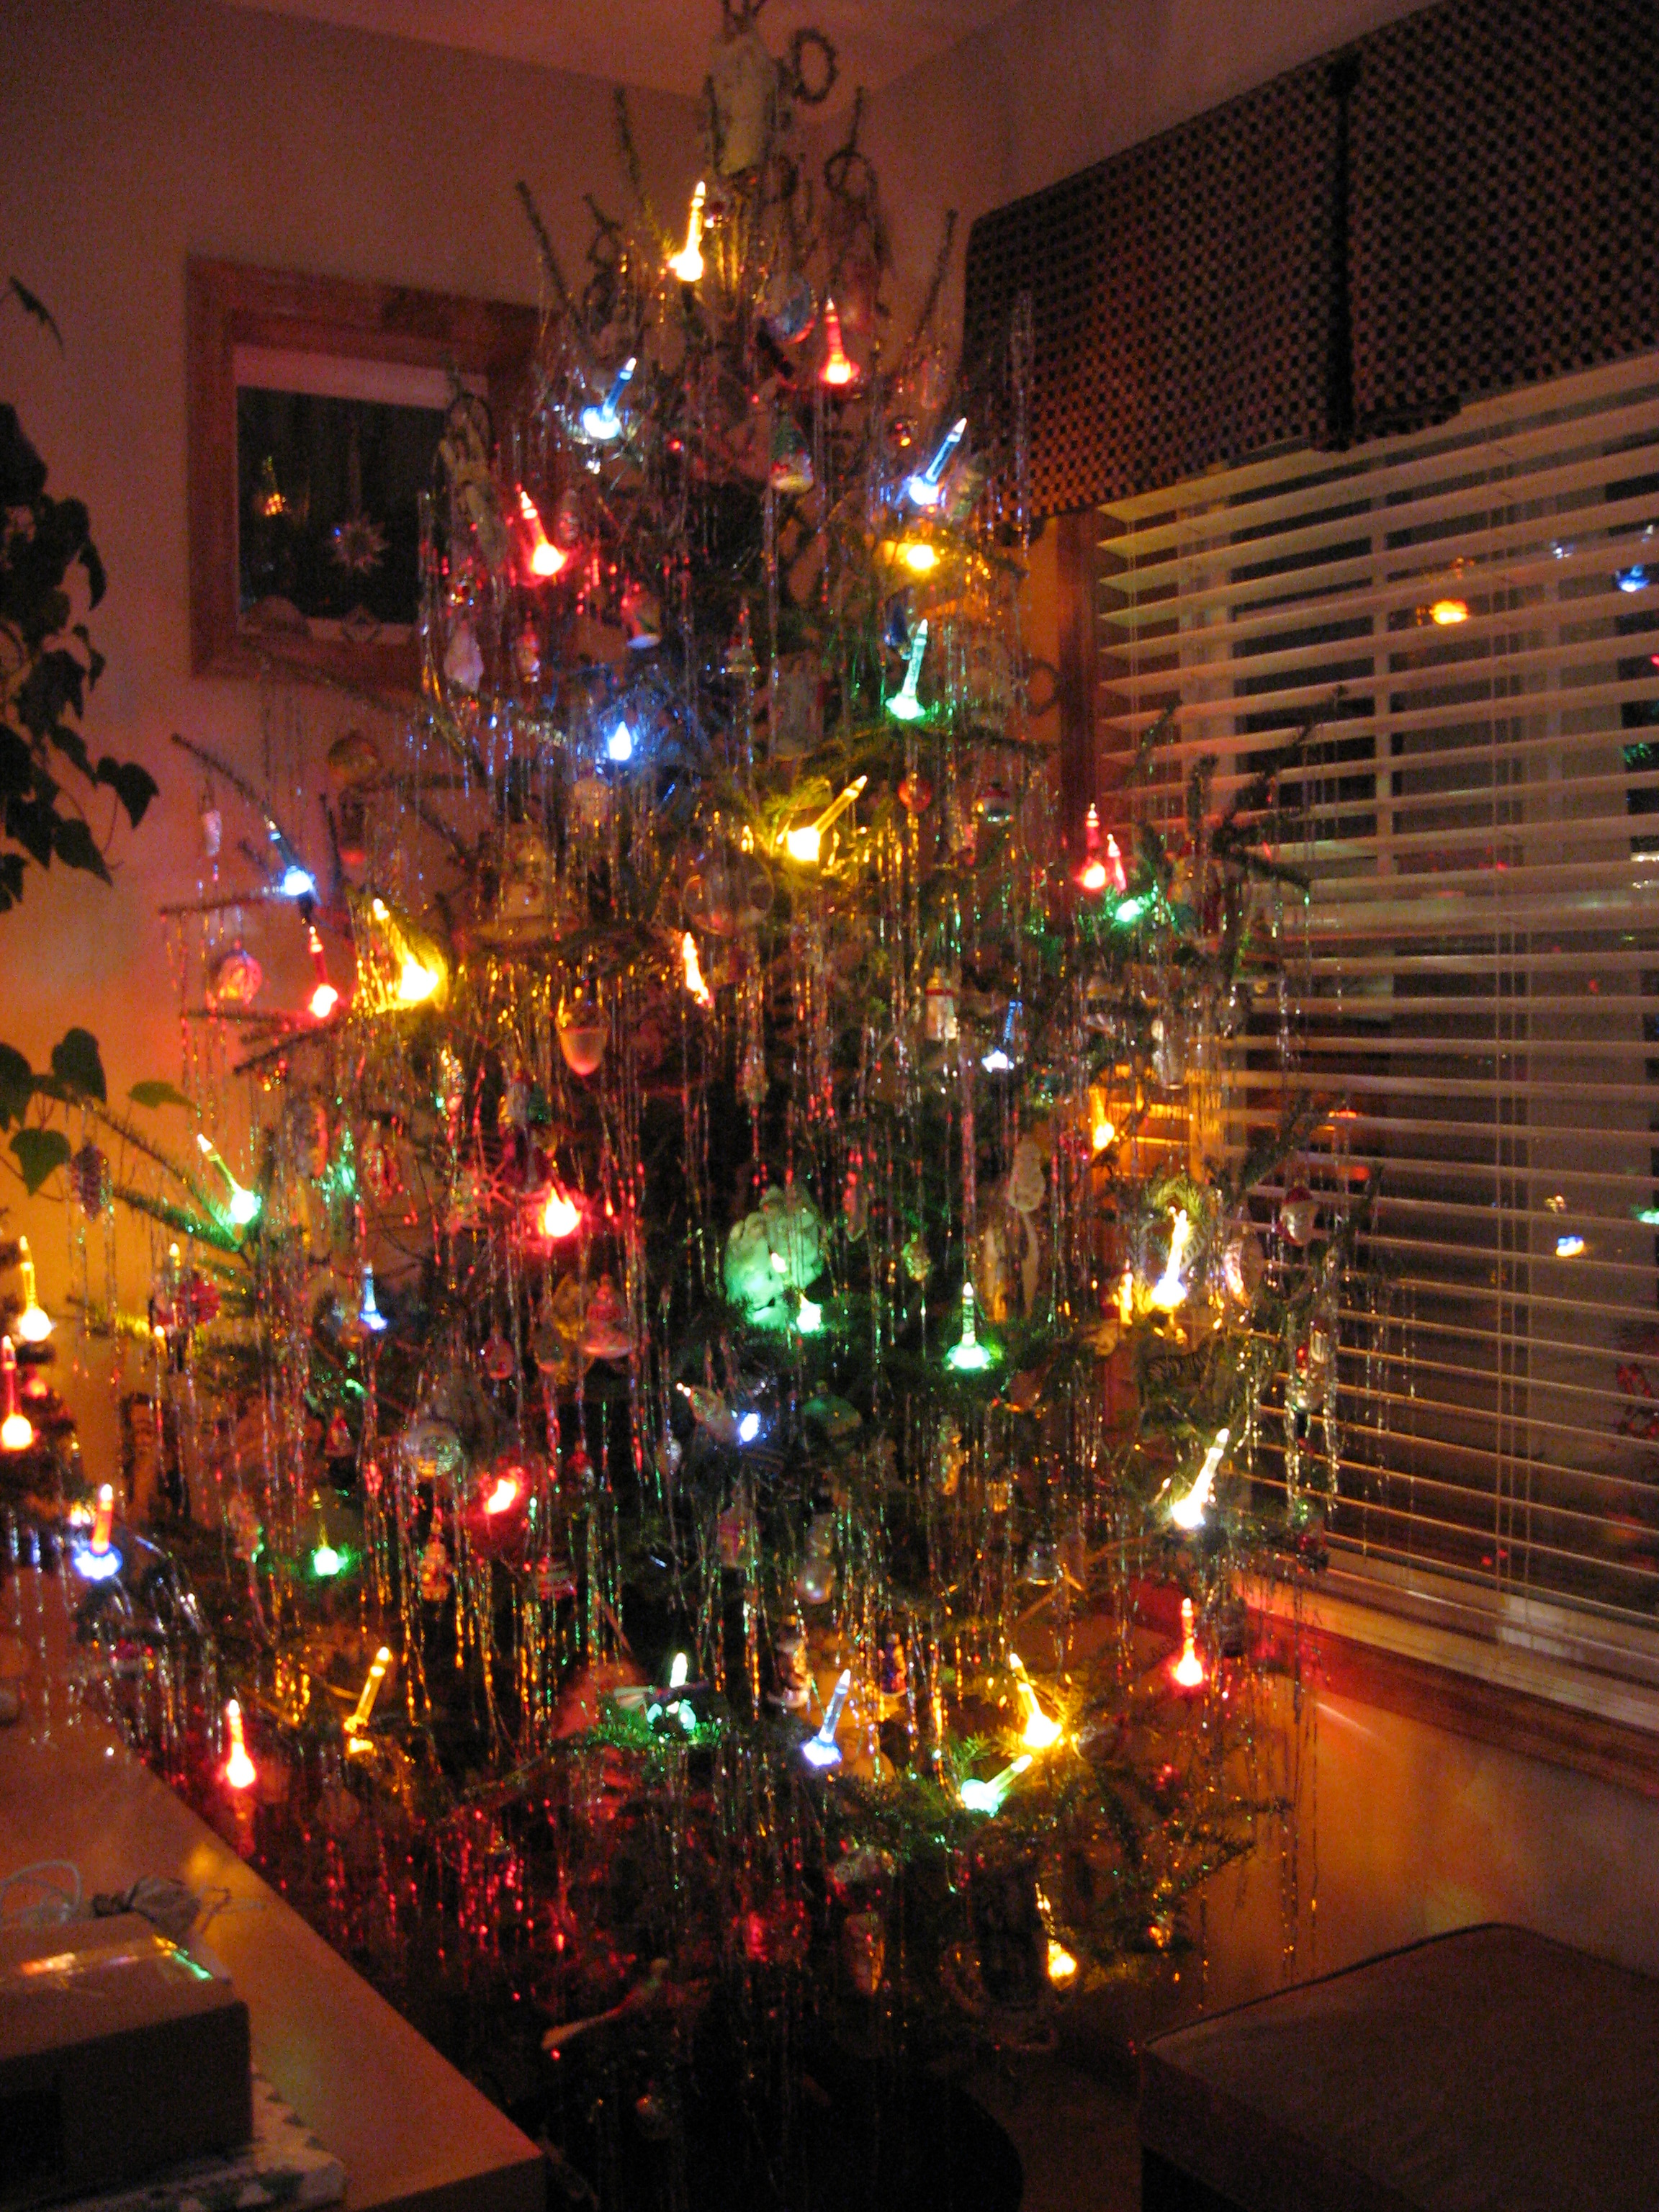 50 S Christmas Tree With Bubble Lights Flickr